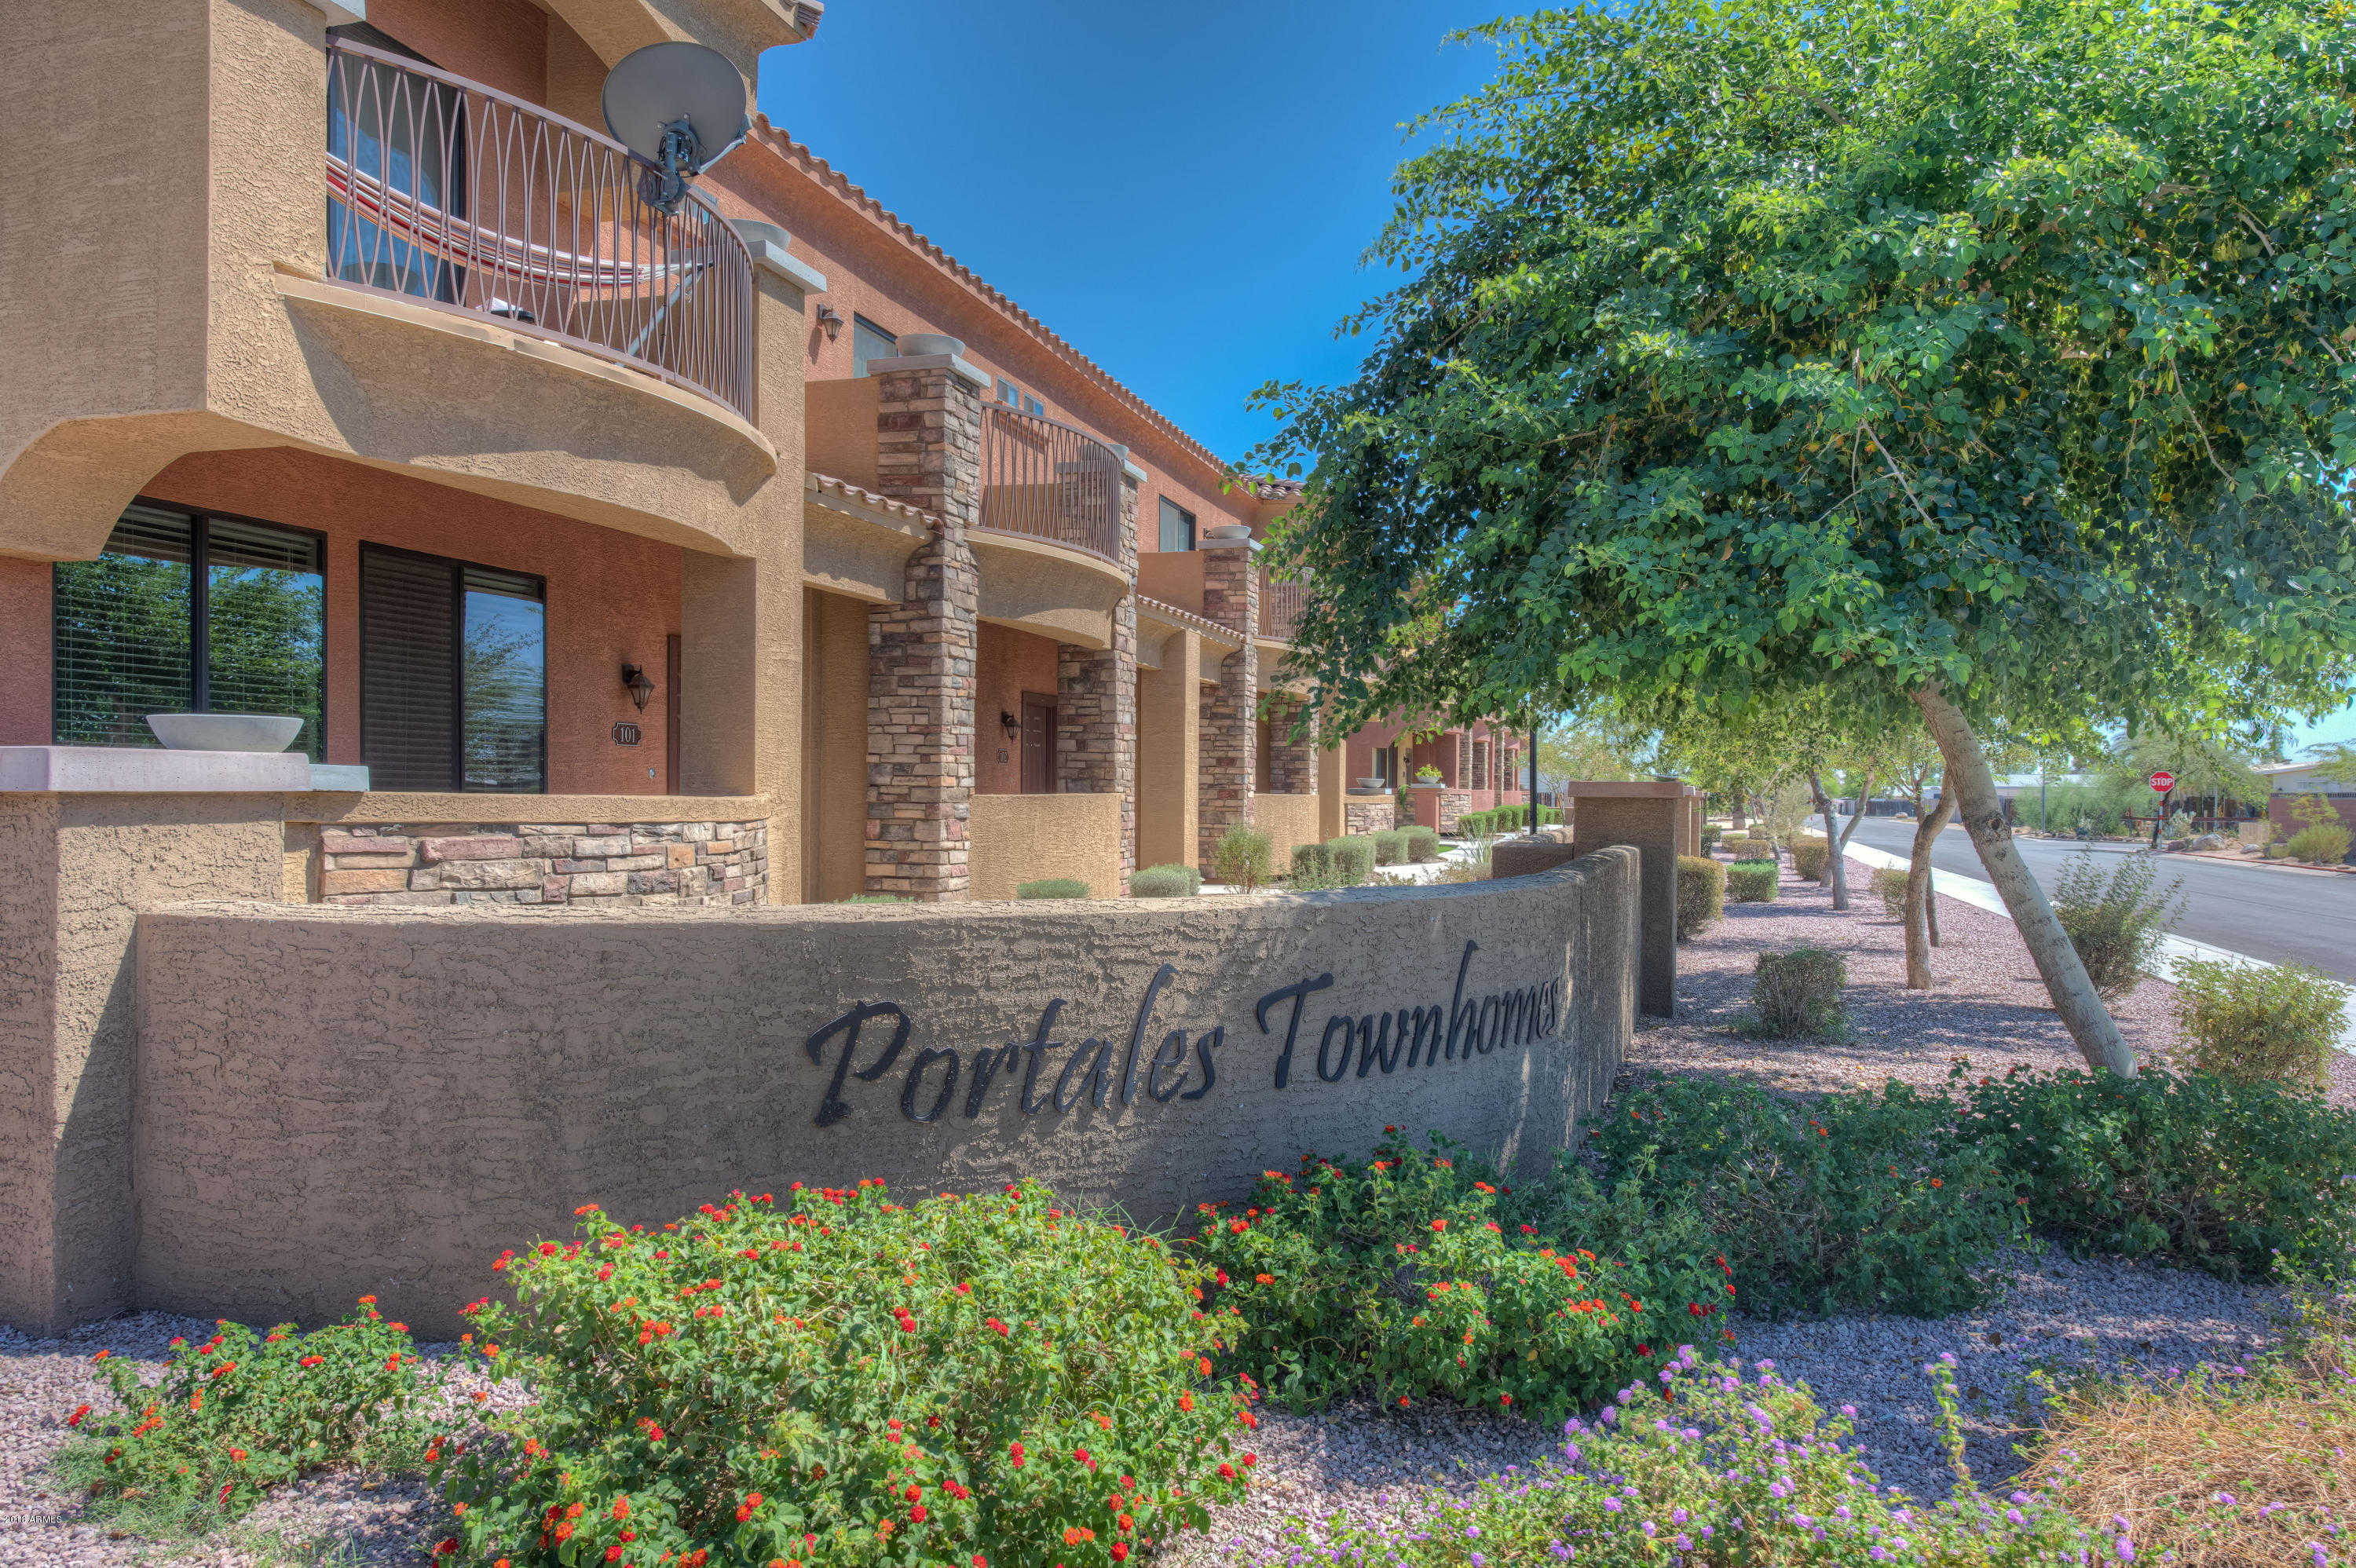 $227,000 - 3Br/3Ba -  for Sale in Portales Townhome Condominiums, Glendale